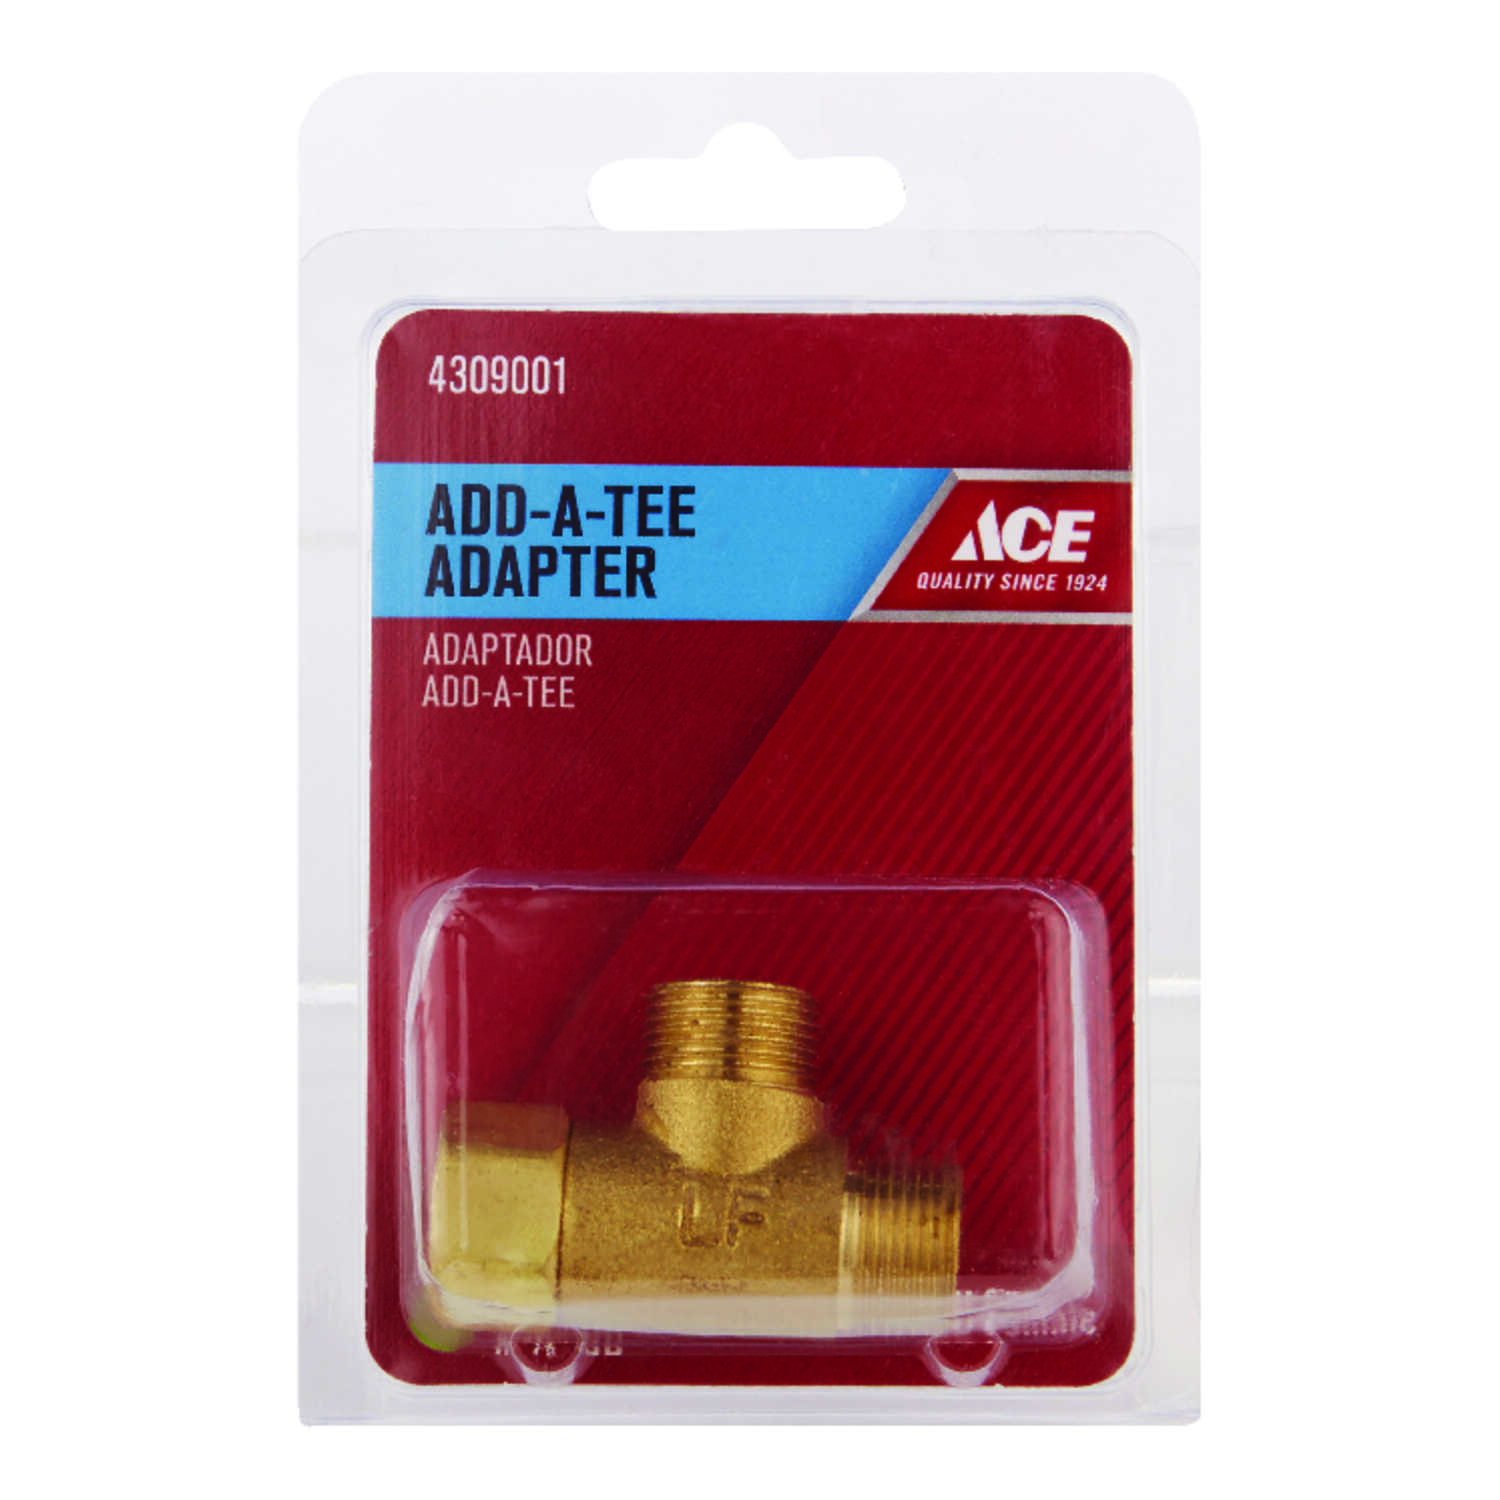 Ace  3/8 in. Female Compression Swivel   x 3/8 in. Dia. Male Compression  Brass  Add A Tee Adapter